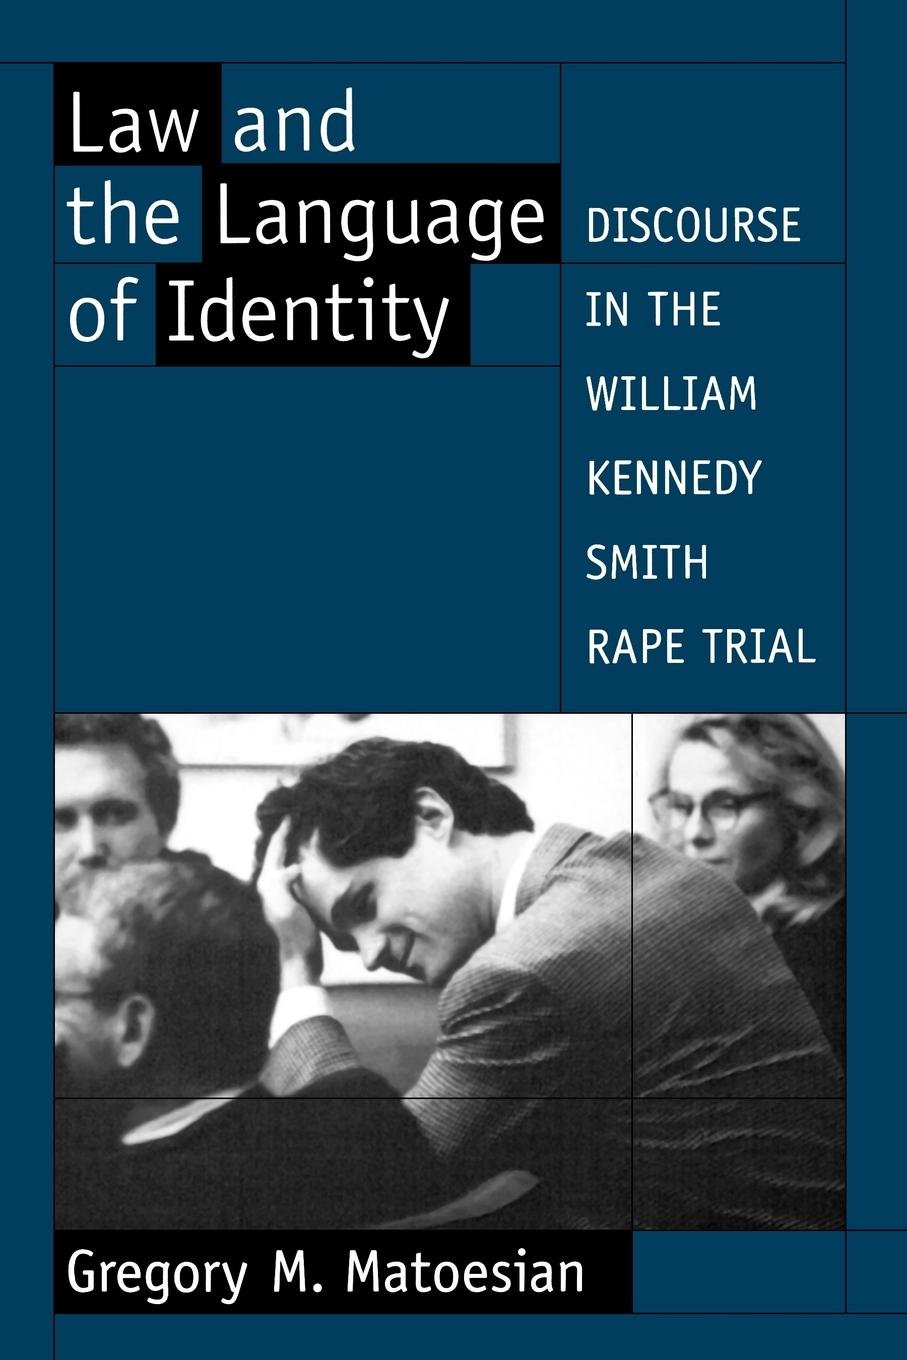 Law and the Language of Identity: Discourse in the William Kennedy Smith Rape Trial by Gregory M Matoesian